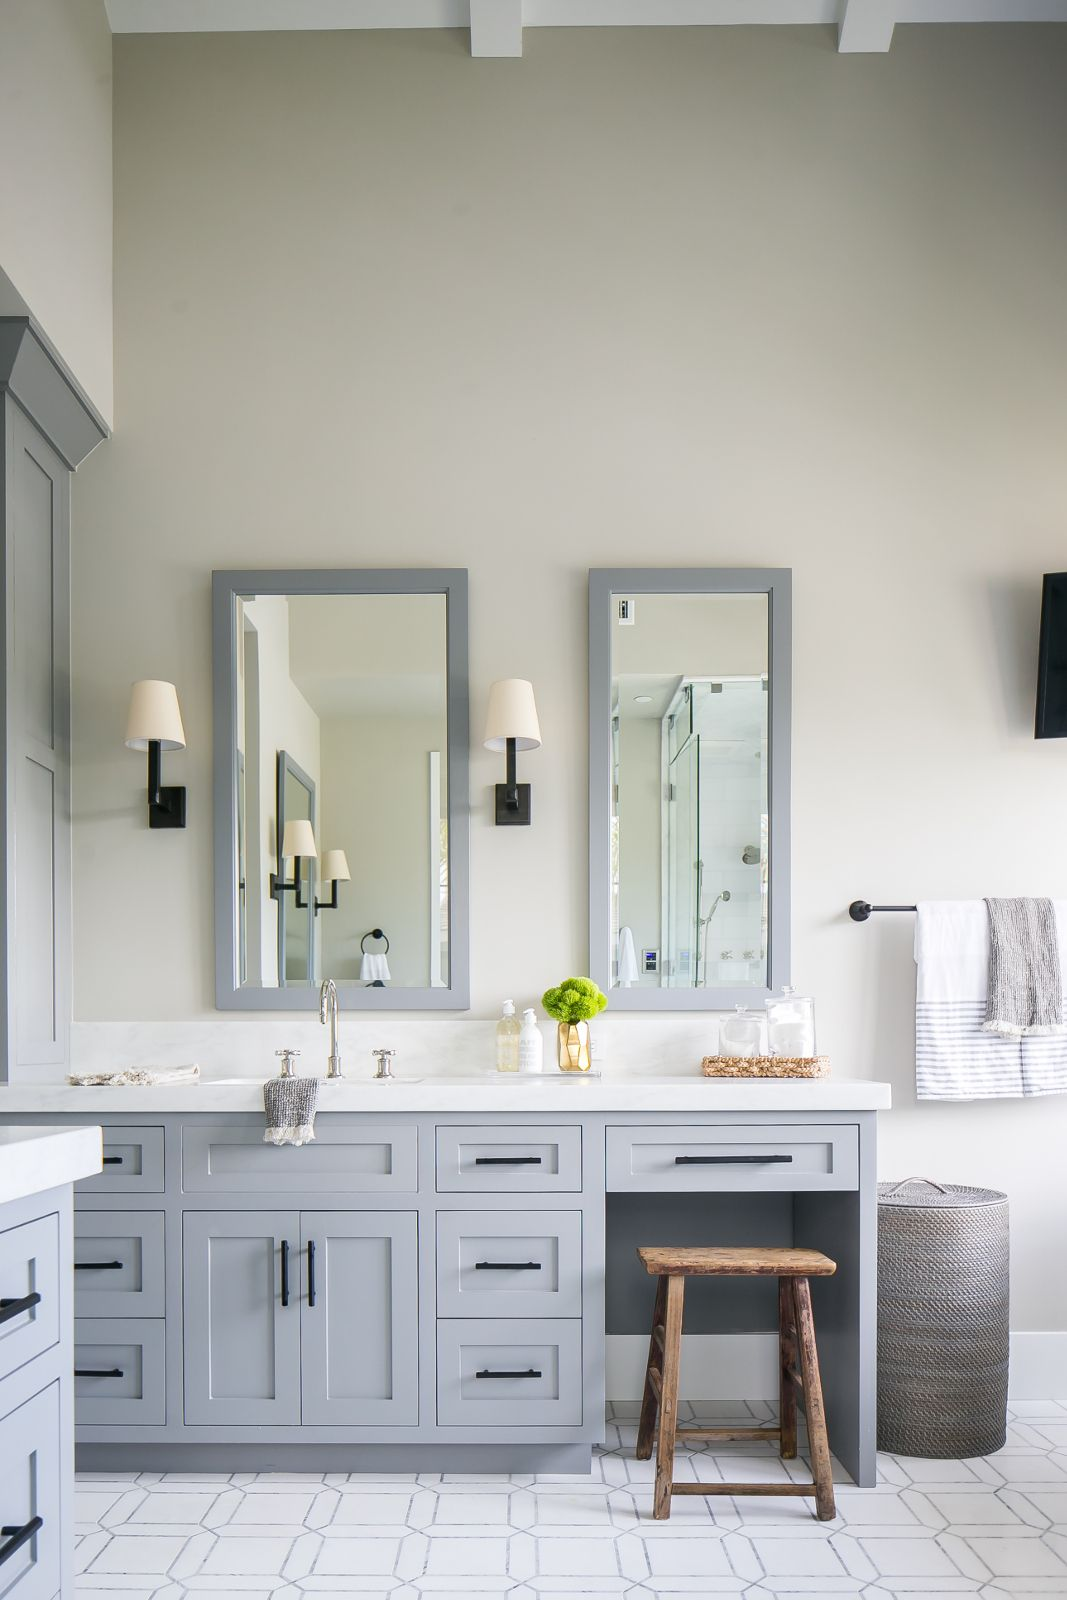 Matte Black Hardware RoundUP Grey bathroom vanity